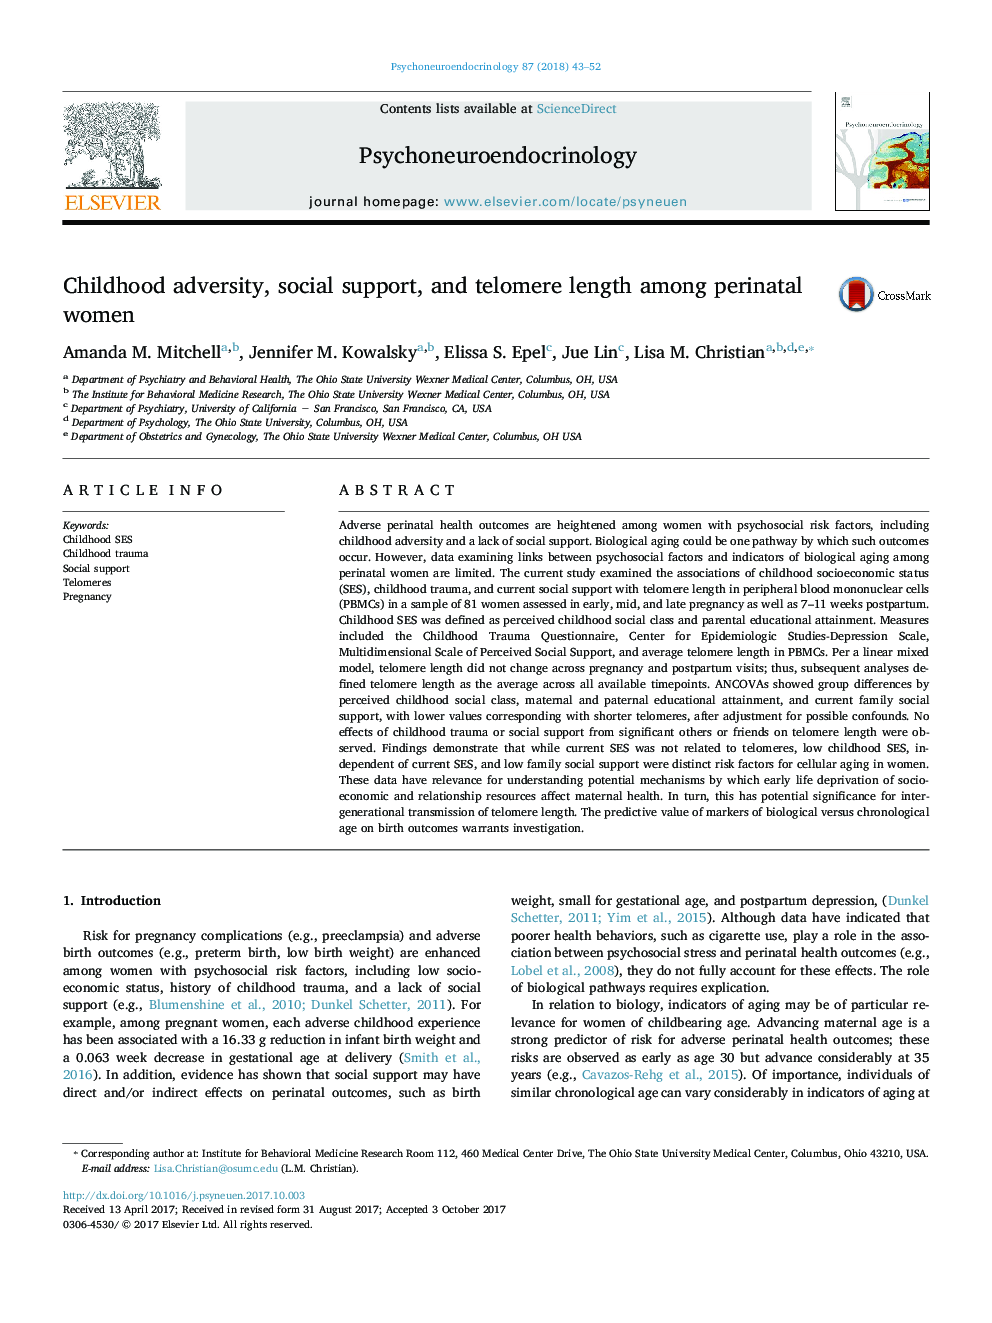 Childhood adversity, social support, and telomere length among perinatal women